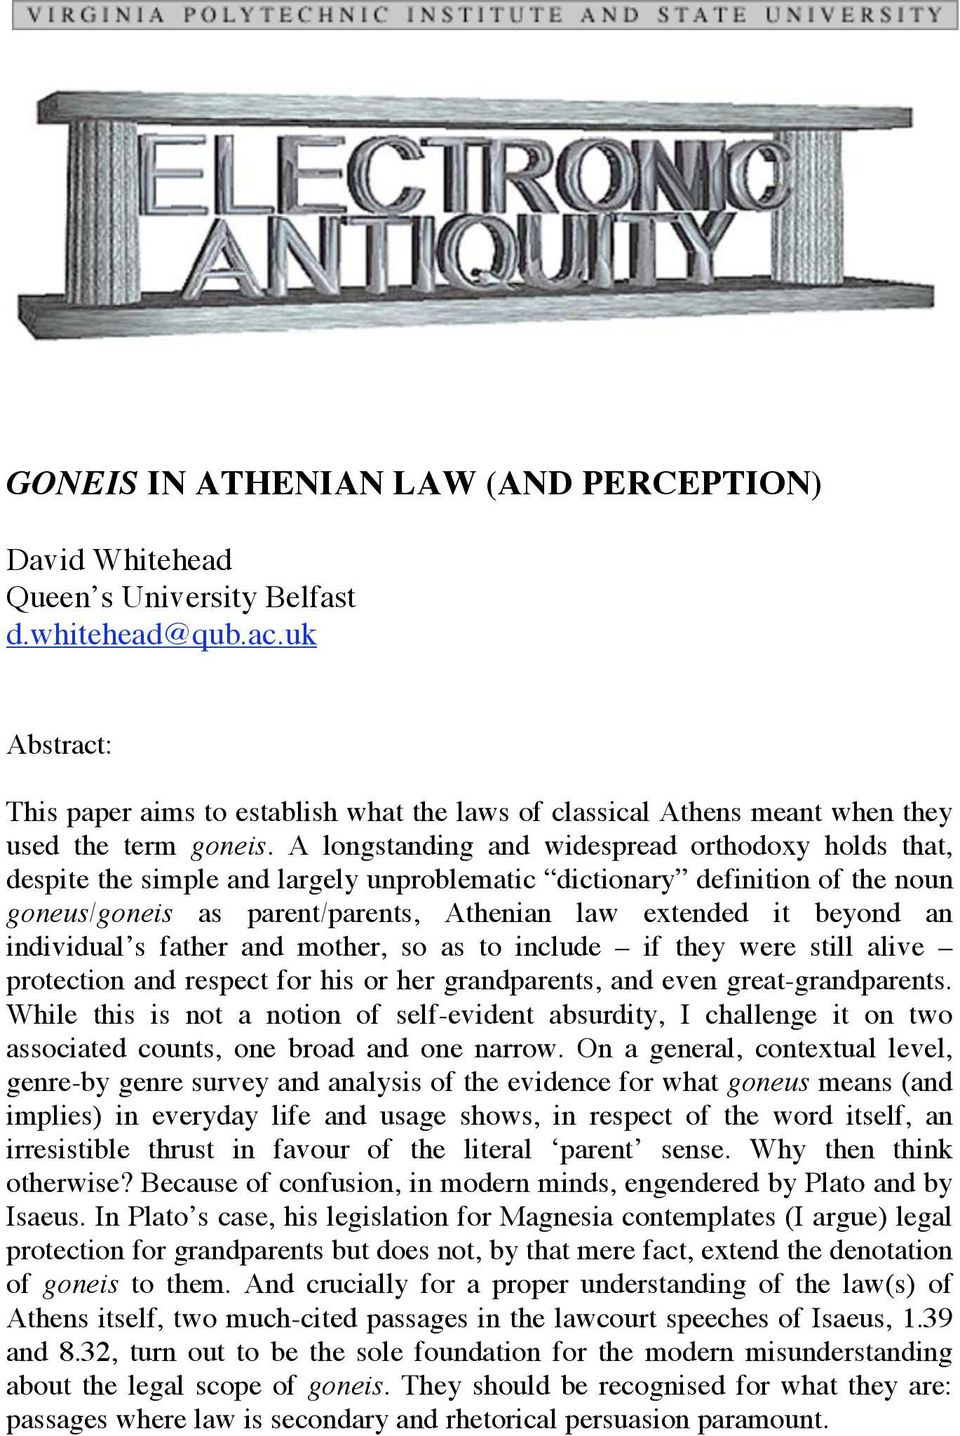 A longstanding and widespread orthodoxy holds that, despite the simple and largely unproblematic dictionary definition of the noun goneus/goneis as parent/parents, Athenian law extended it beyond an